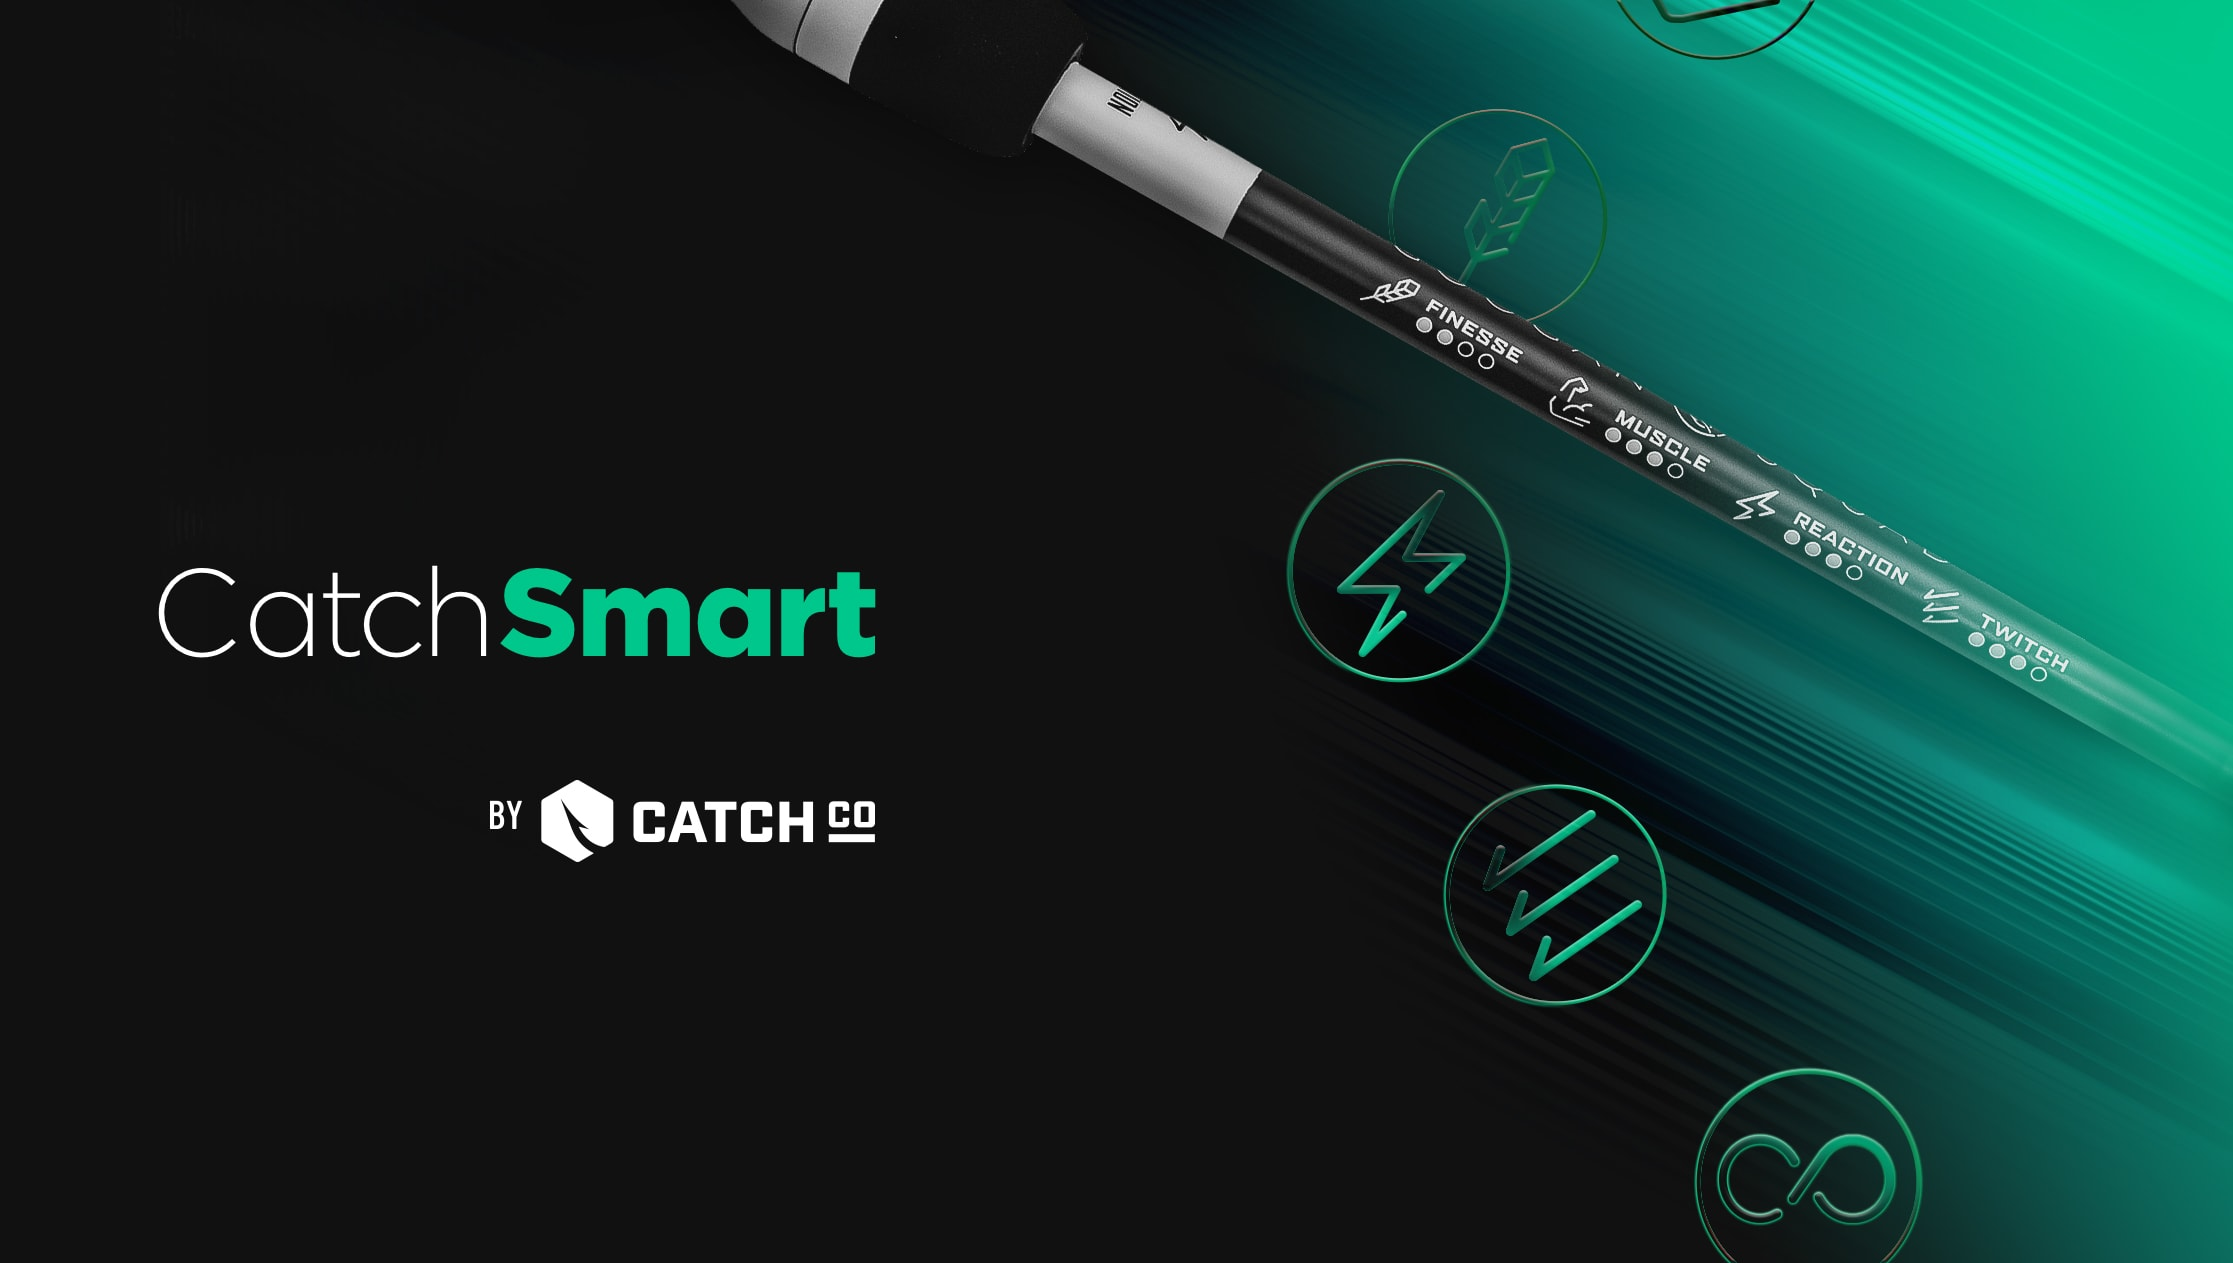 Catch Co. CatchSmart System